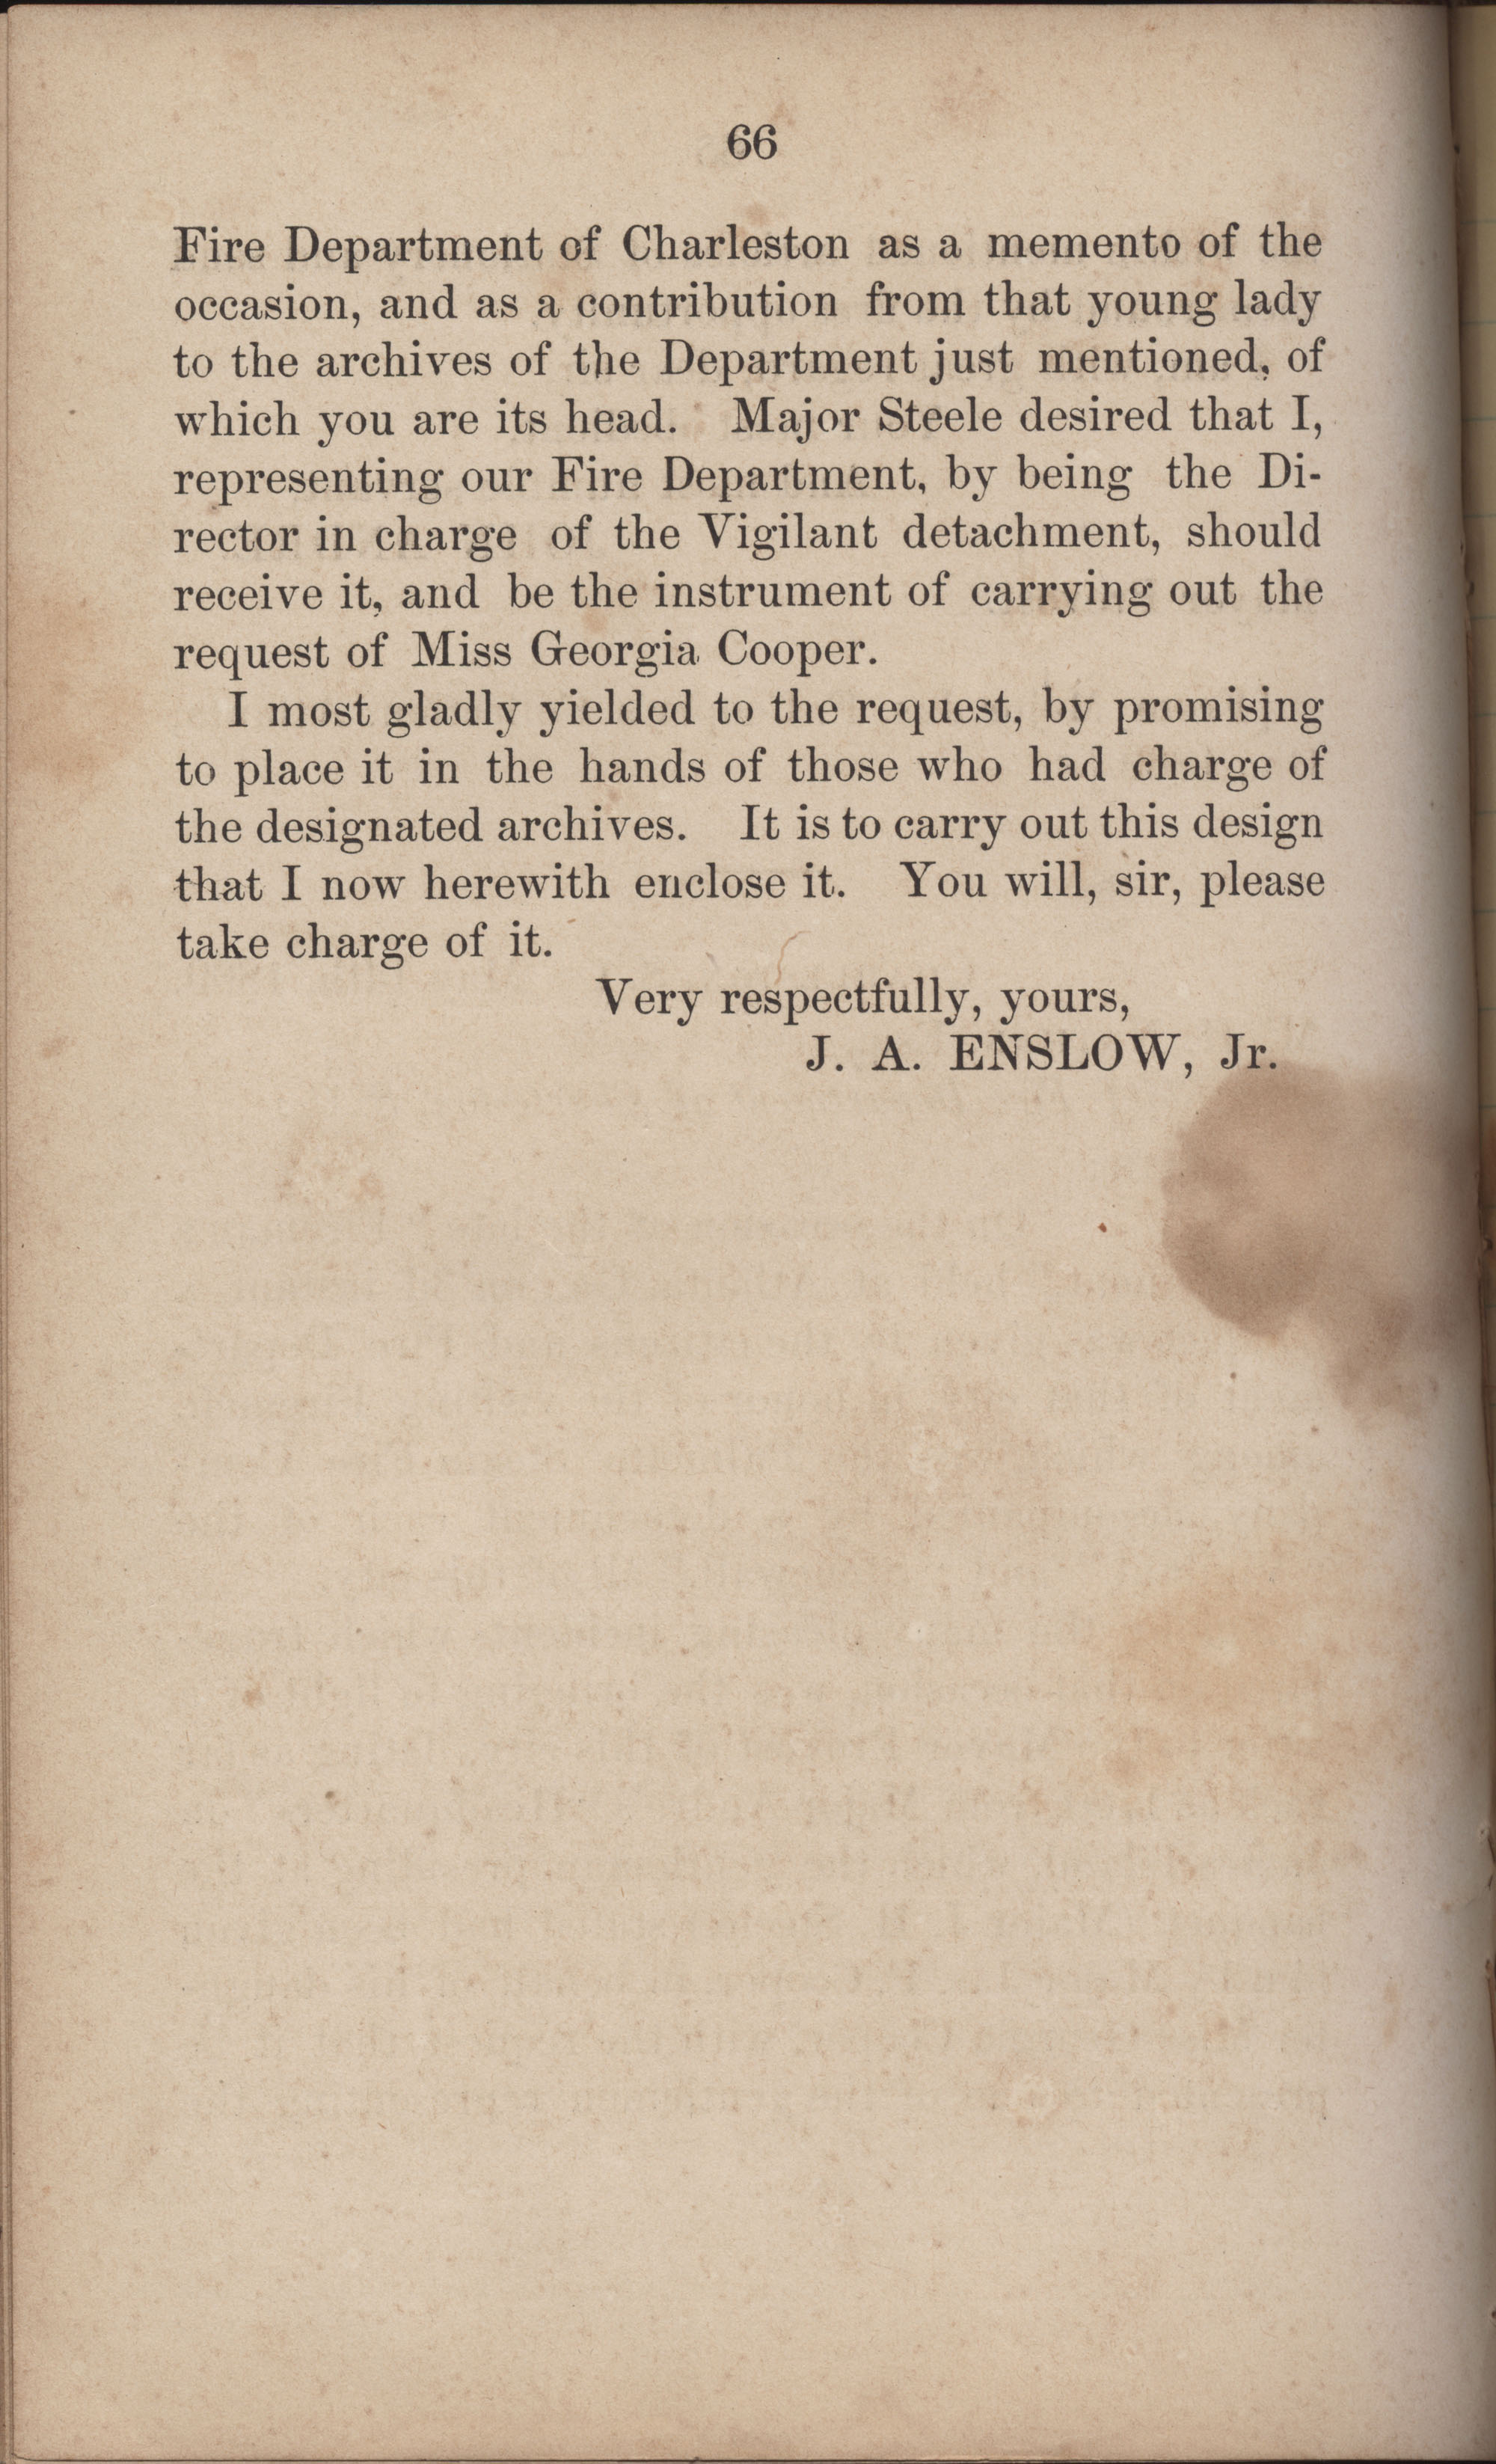 Annual Report of the Chief of the Fire Department of the City of Charleston, page 293